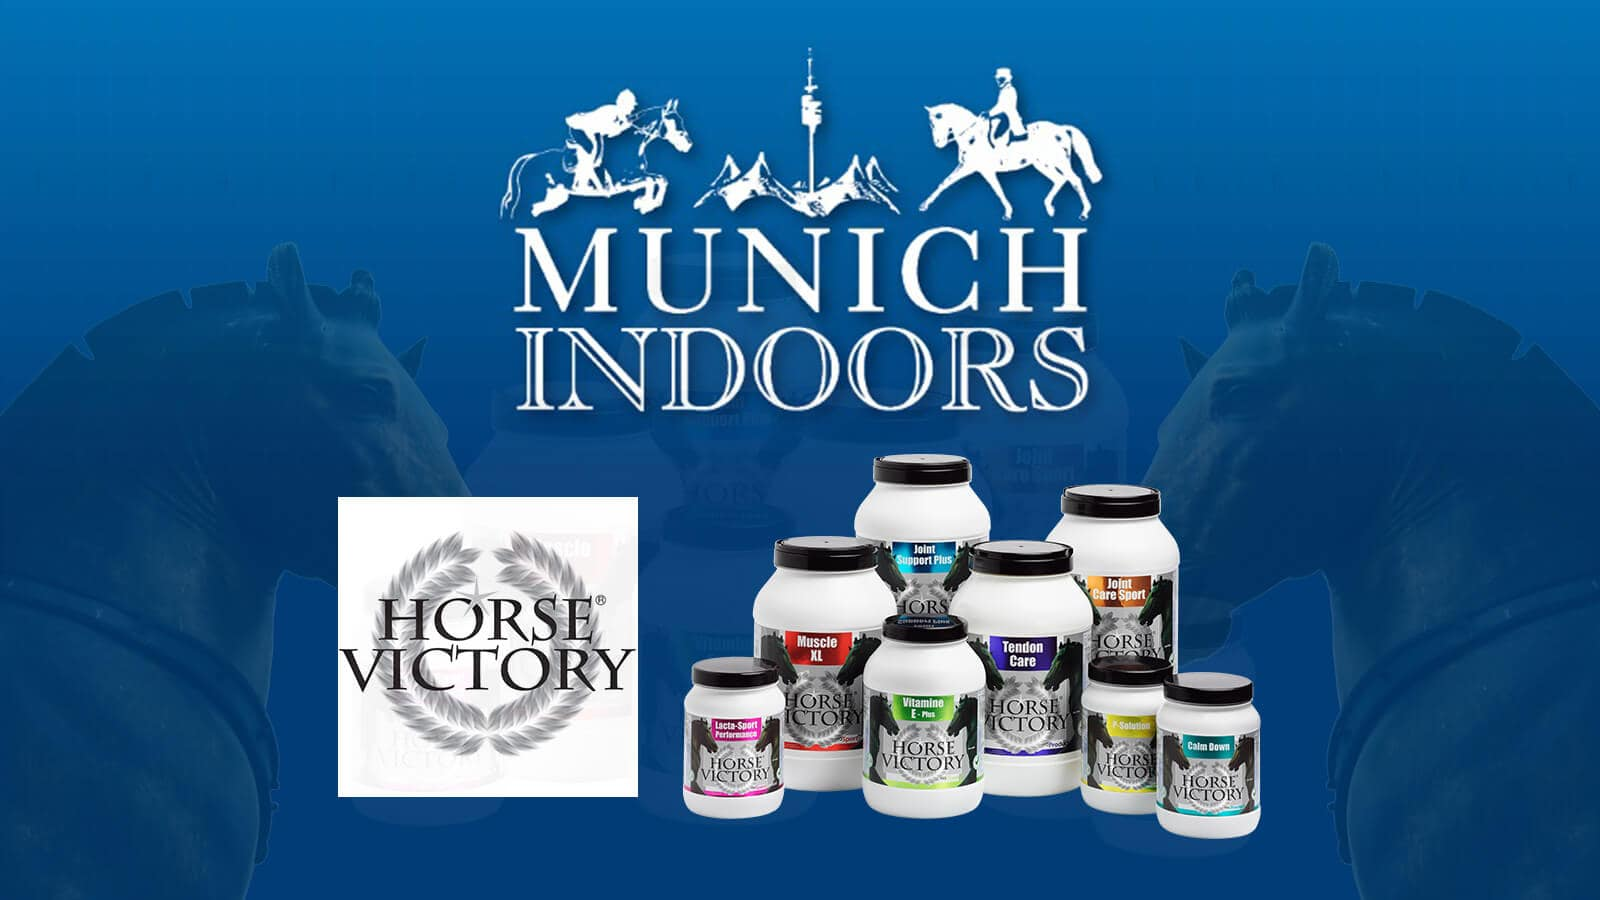 meet horse victory at munich indoors 2016 horse victory. Black Bedroom Furniture Sets. Home Design Ideas